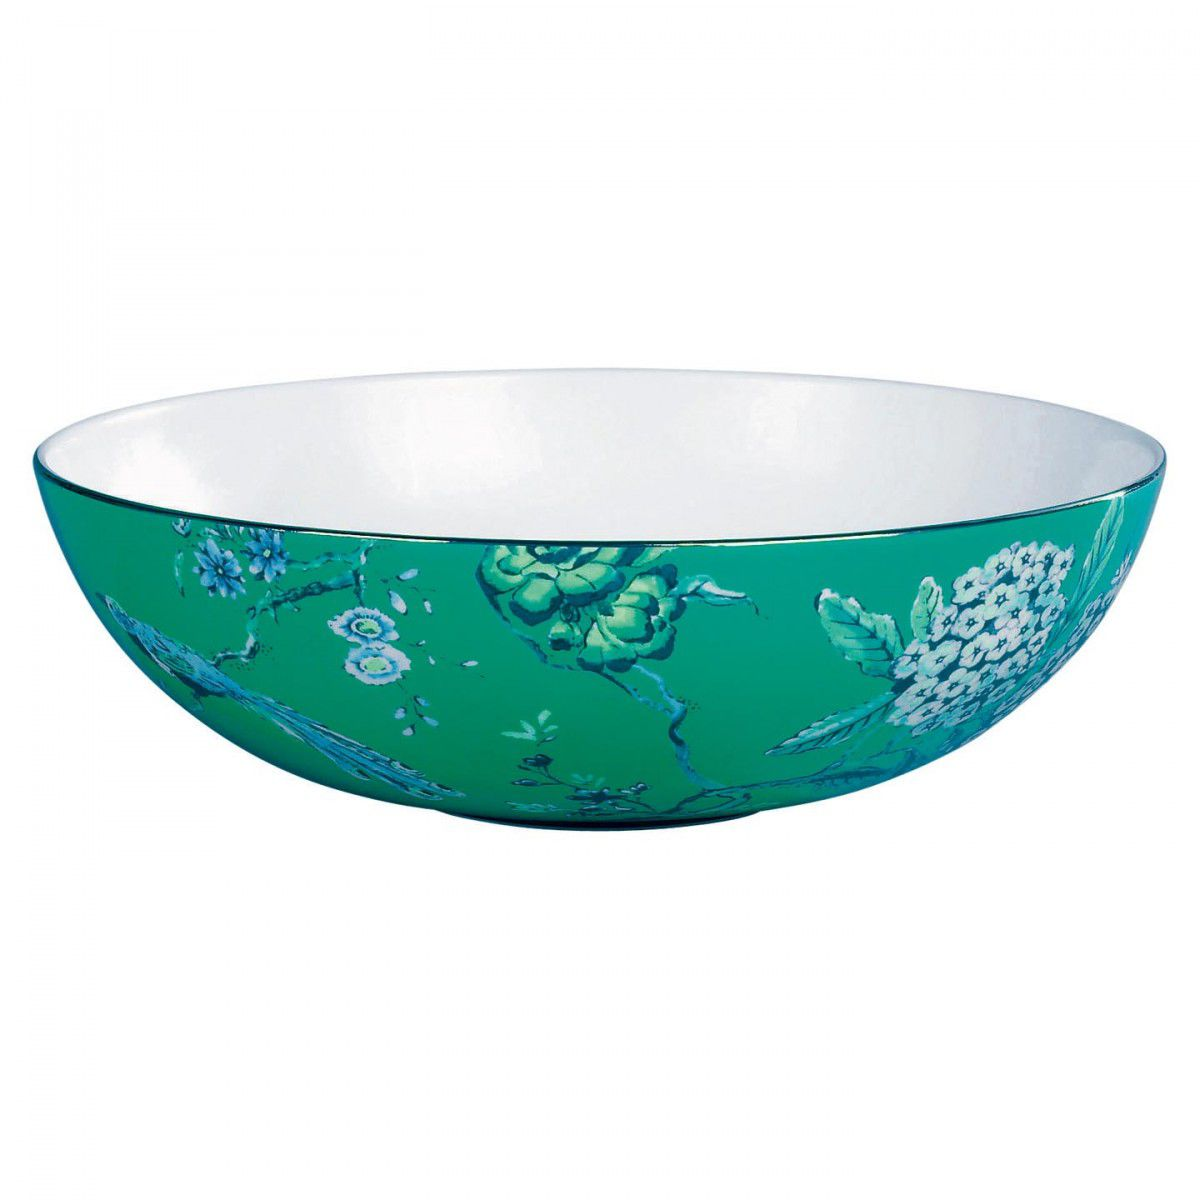 Bol Supa/cereale Chinoiserie Green